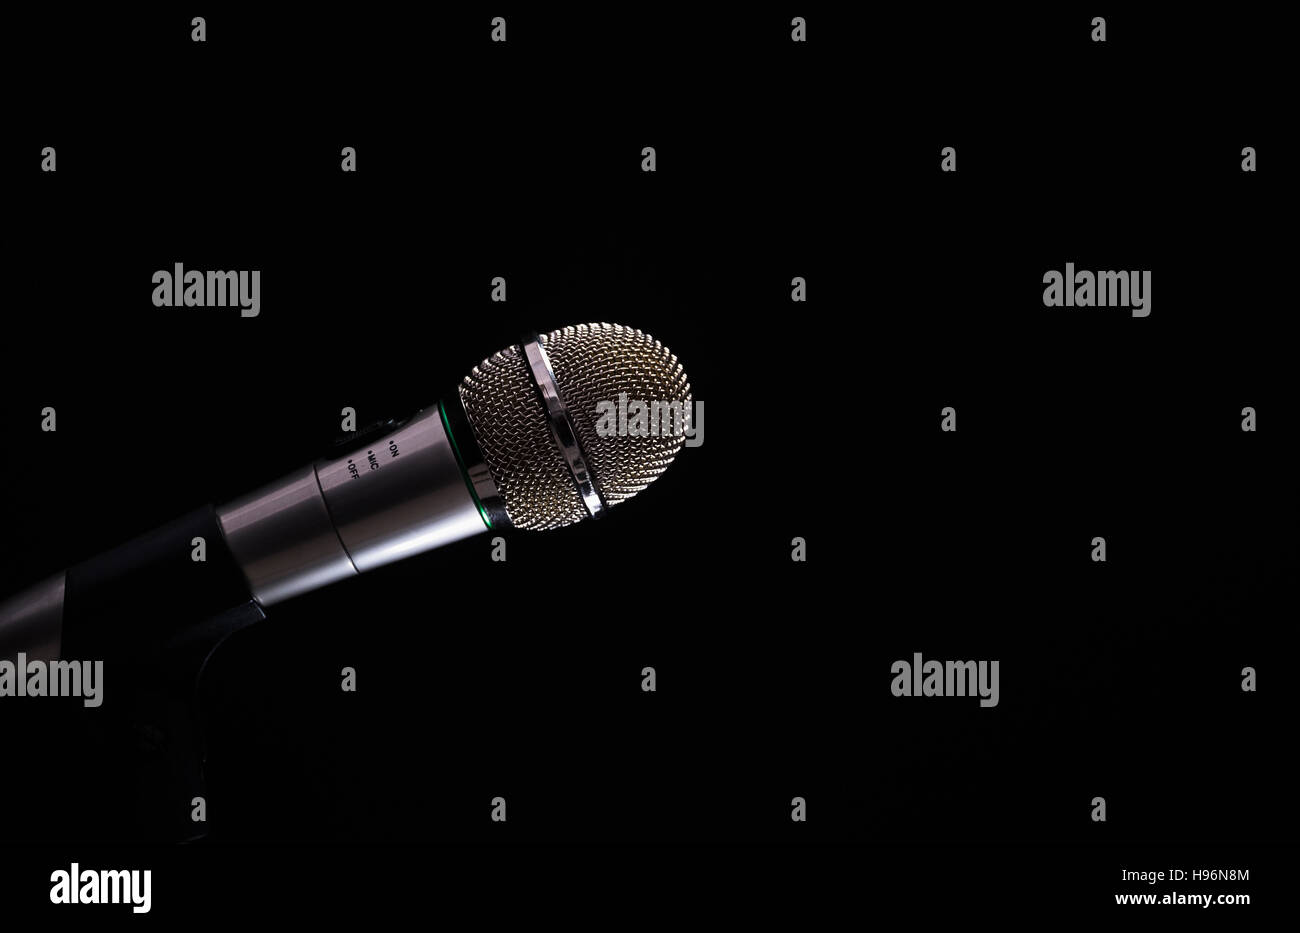 Retro styled microphone - Stock Image